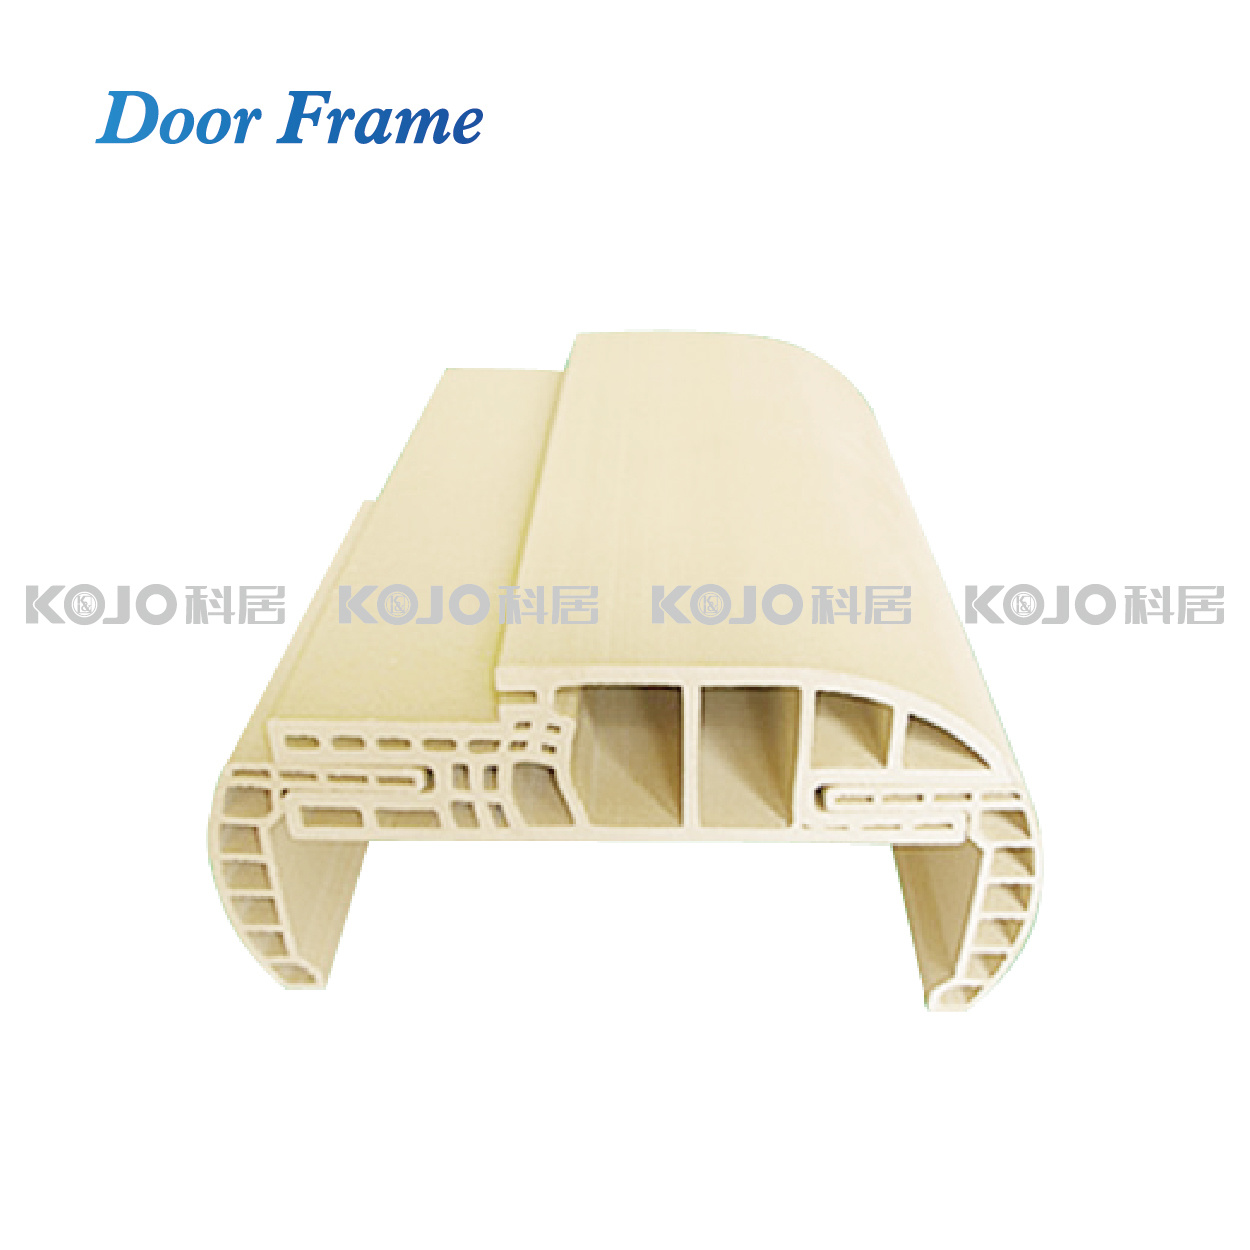 OEM/ODM Wood and Plastic Compostite Door Frame Architrave 5.8mm (MT-6018A)